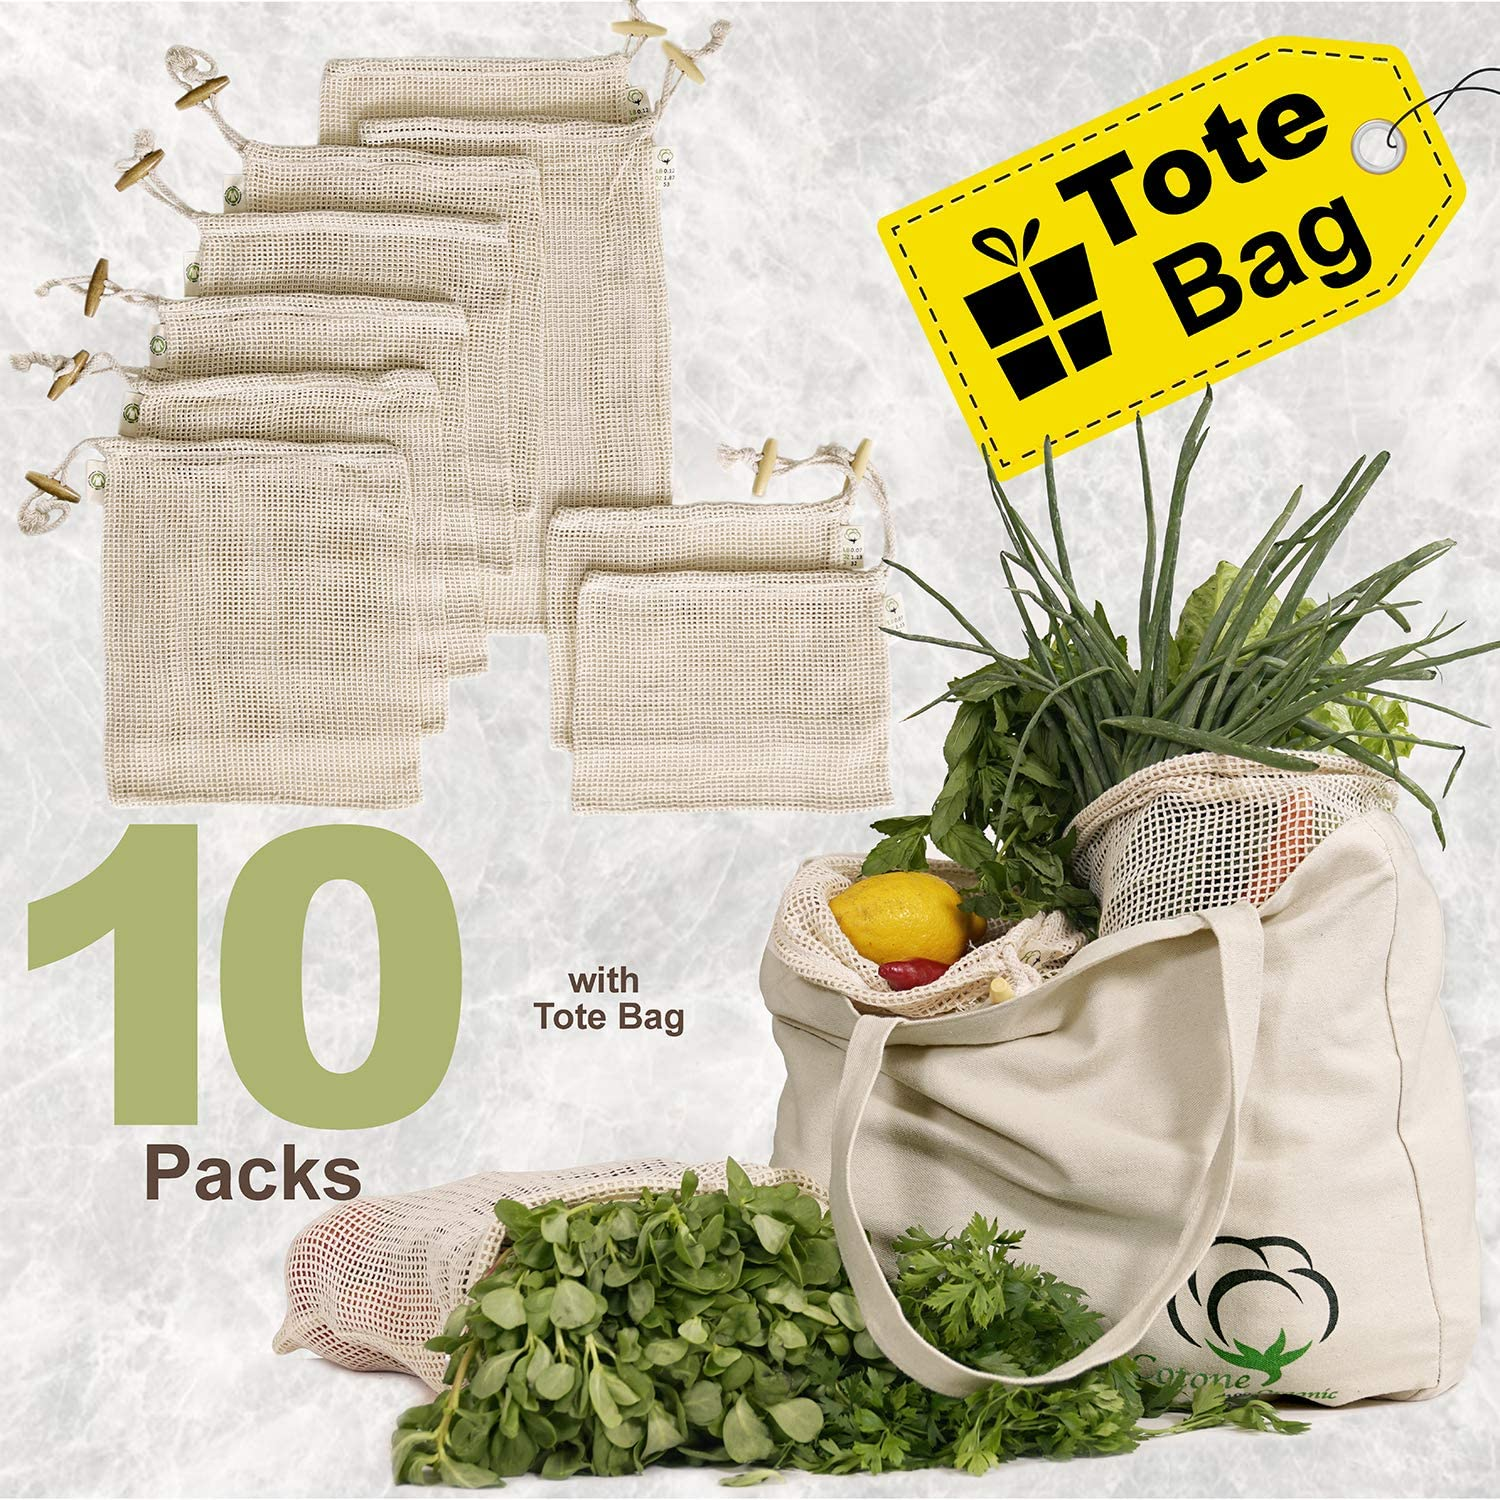 Reusable Produce Bags, Organic Cotton Mesh Bags for Grocery Shopping and Storage, Washable, Biodegradable, Eco Friendly, Food Carrying Sack, Set (2S, 5M, 2L) of 10 with Tote Bag, GOTS Certificiated